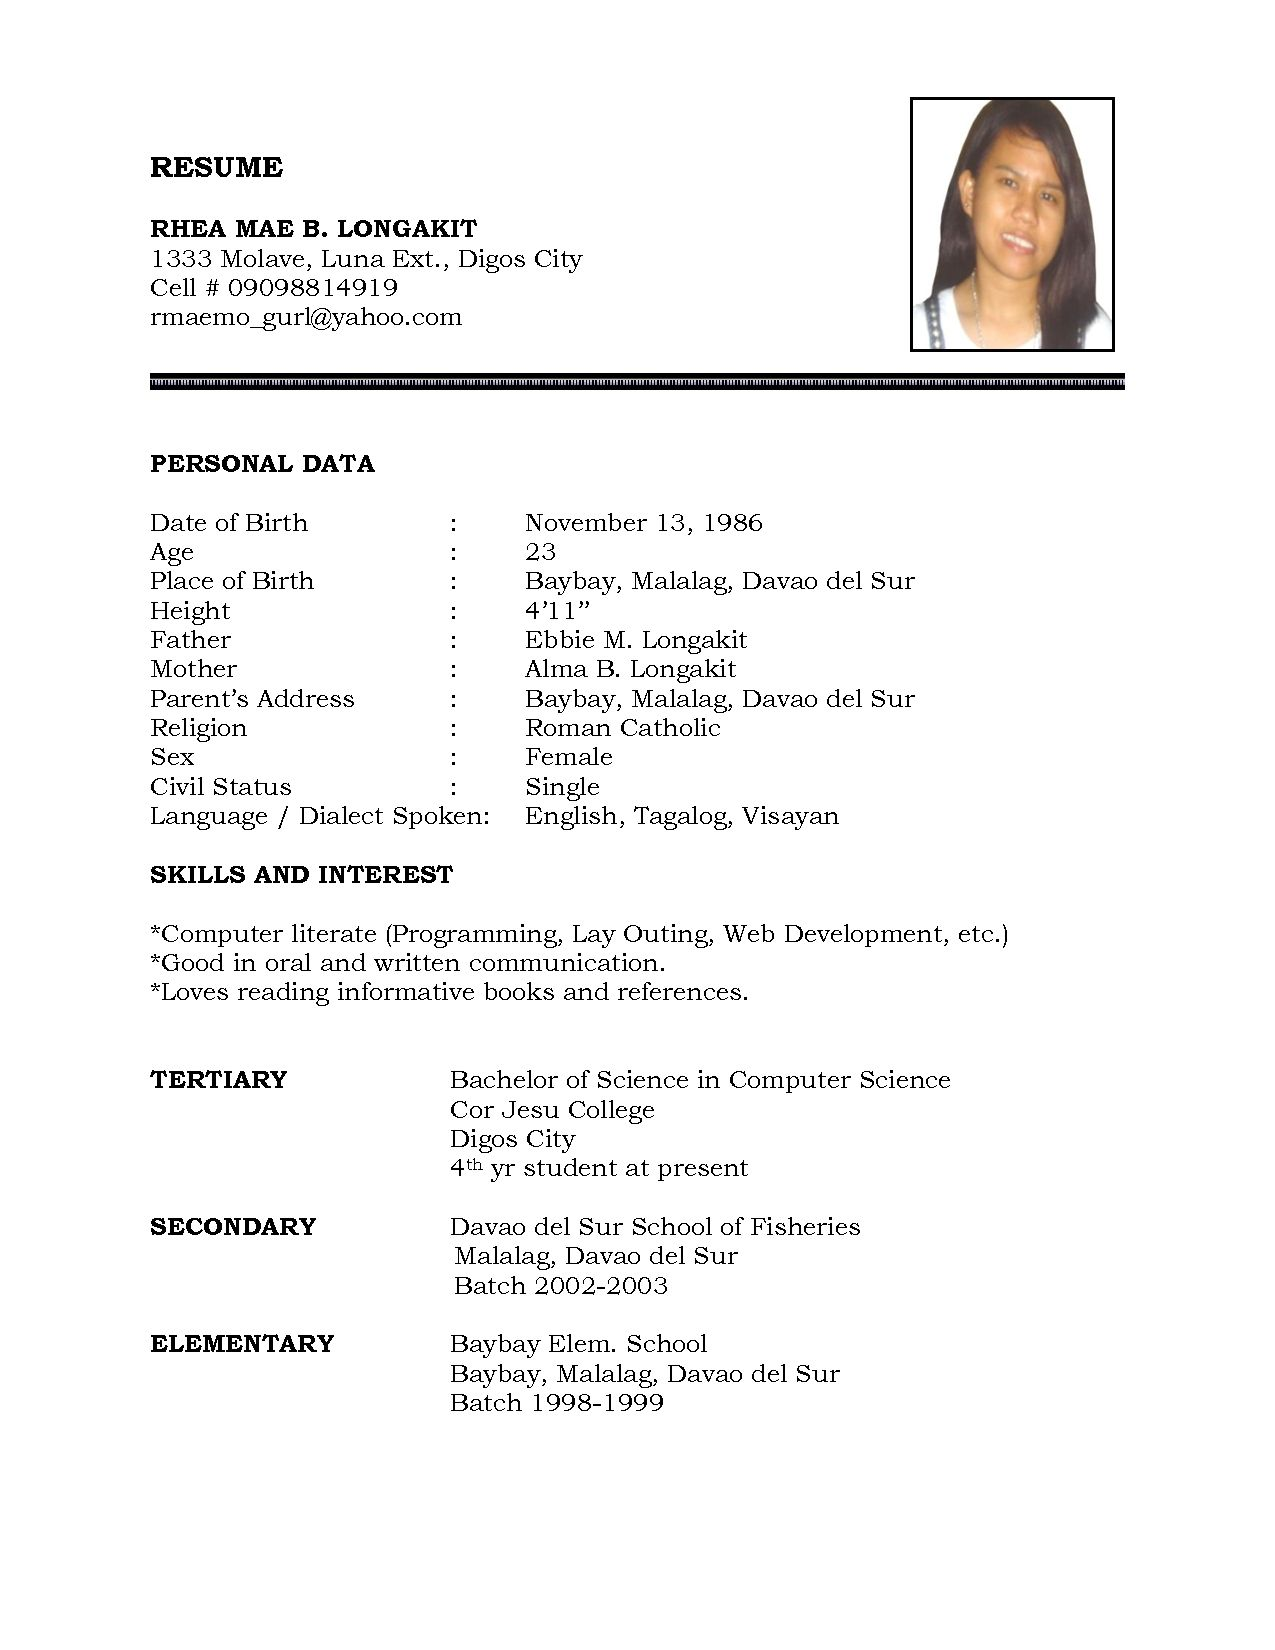 resume Basic Resume Format download free blank resume form template printable biodata format format